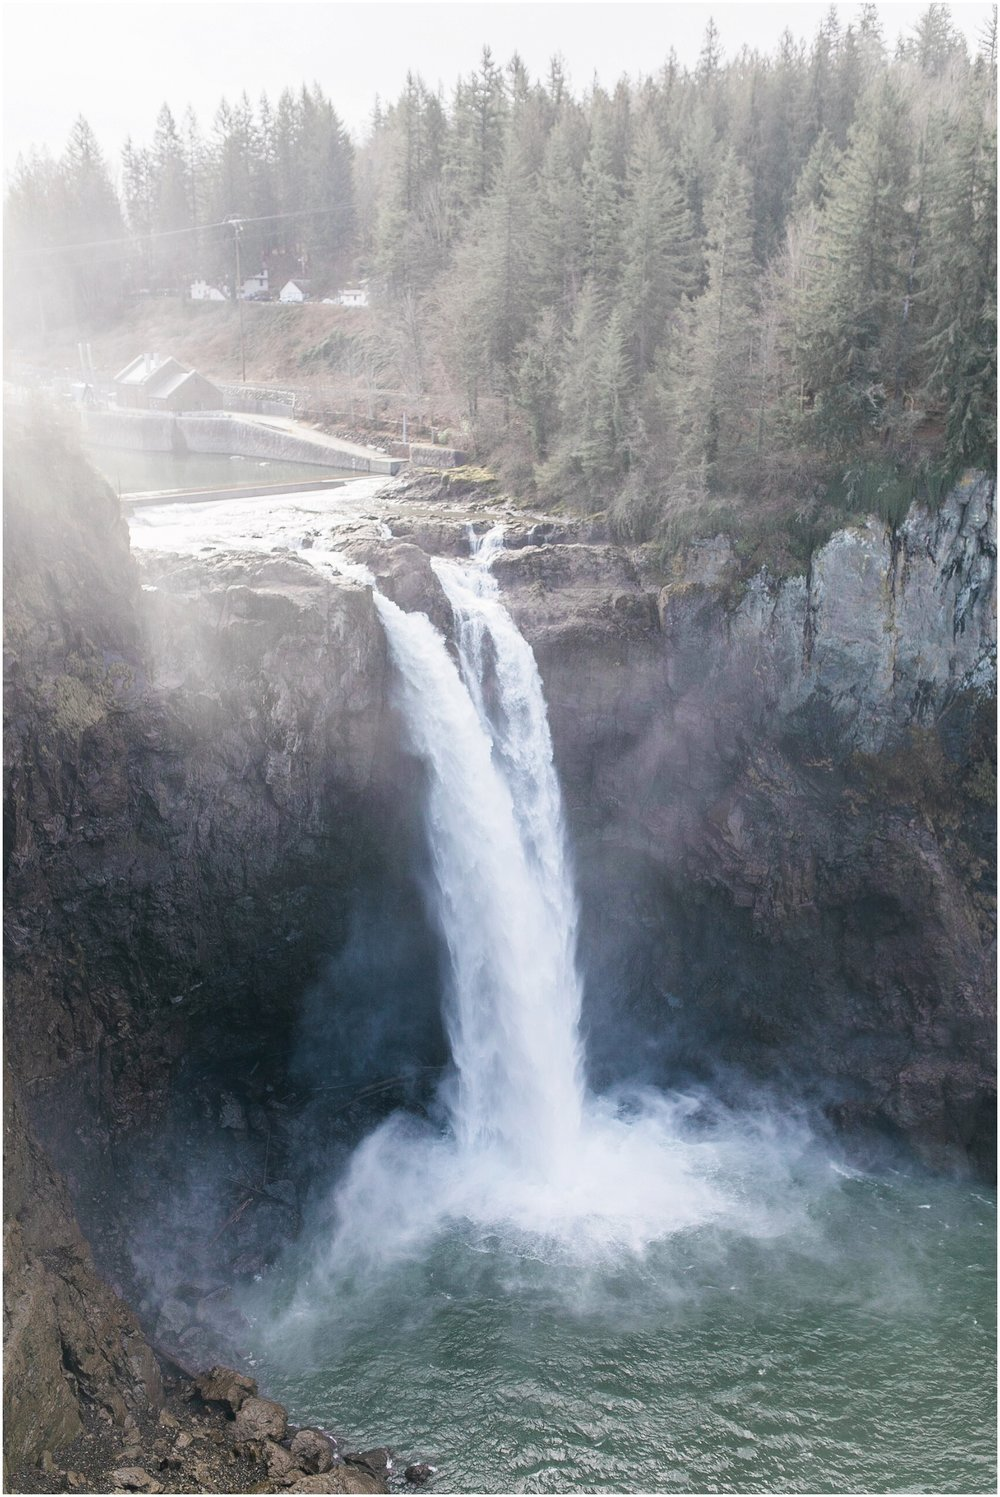 Silvertips, Sqnoqualmie Falls, Engagement, Waterfall, Dog friendly, Spring Engagment